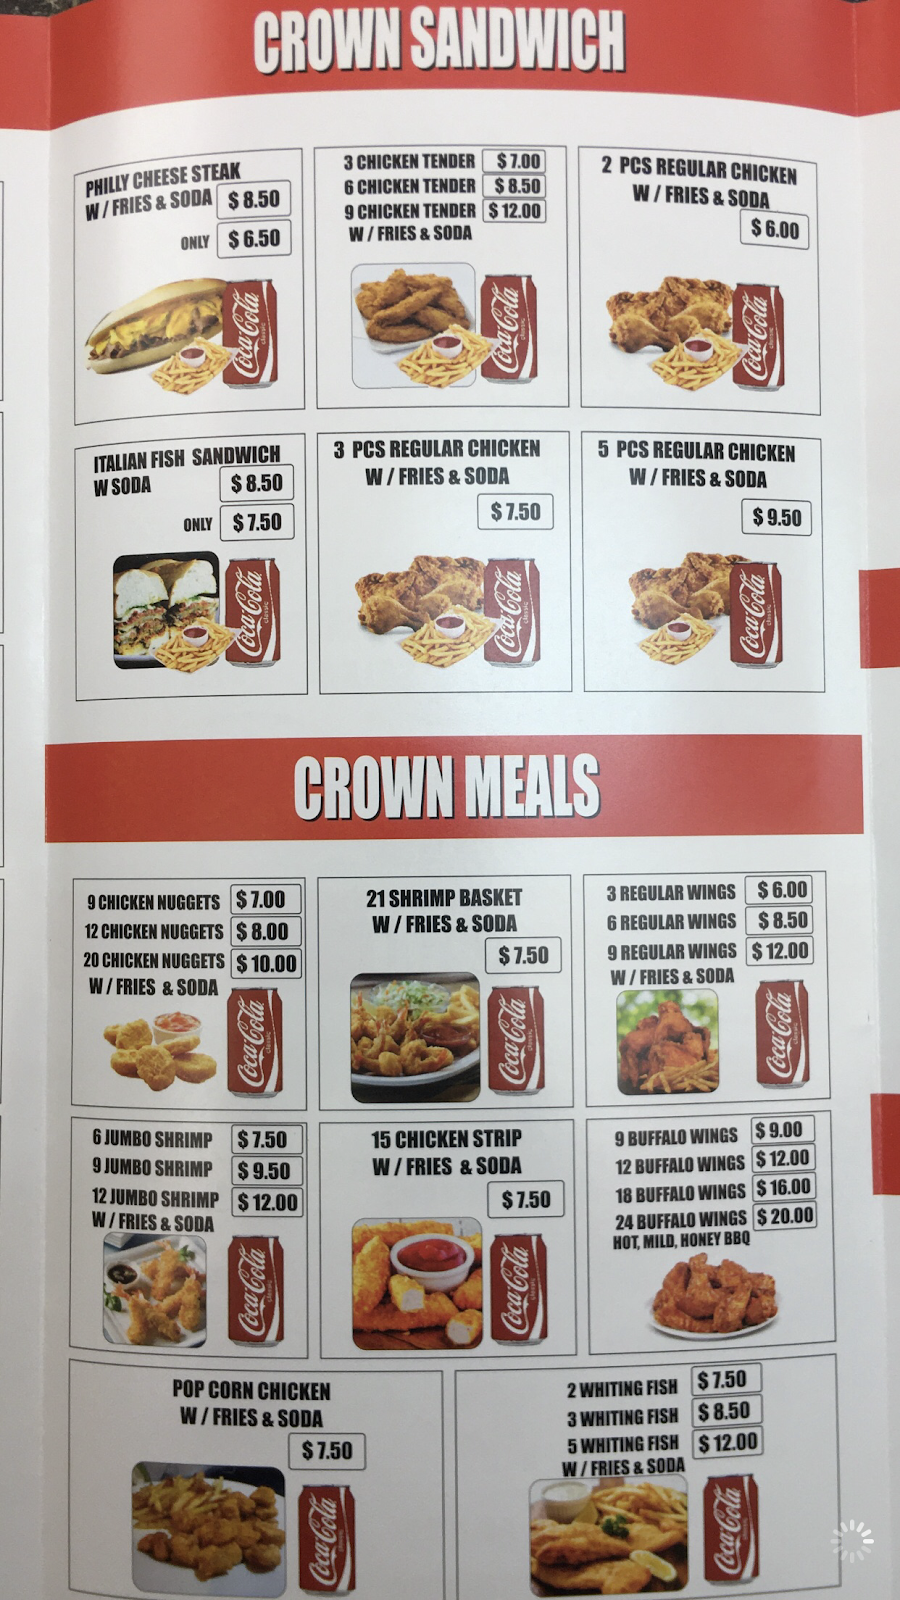 Crown Fried Chicken & Grill | restaurant | 1621 Park Ave, South Plainfield, NJ 07080, USA | 9087550313 OR +1 908-755-0313